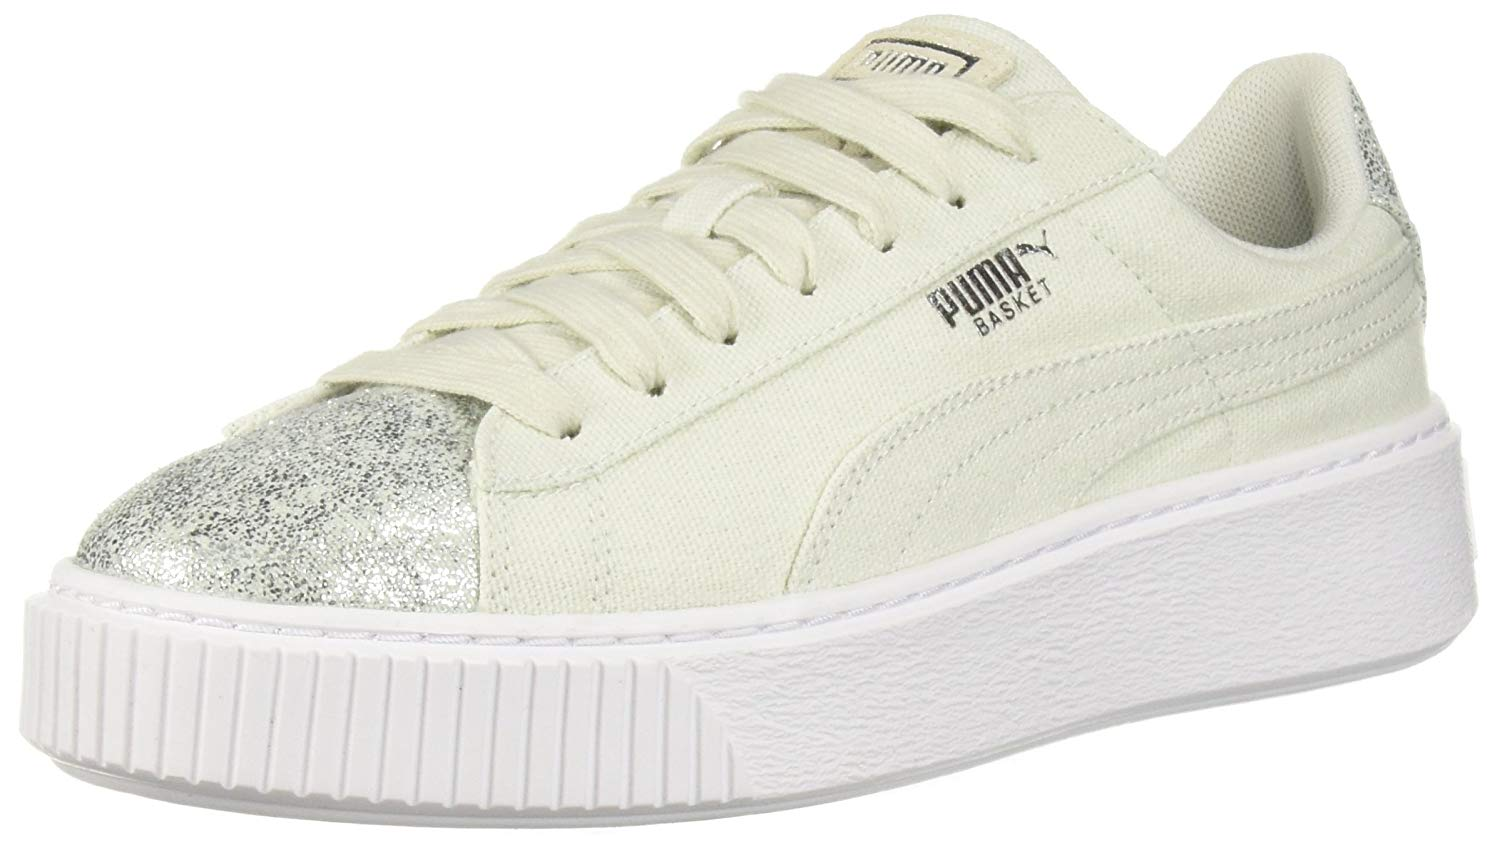 f07da5be1903 Puma Womens Basket Platform Canvas Low Top Lace Up Fashion Sneakers